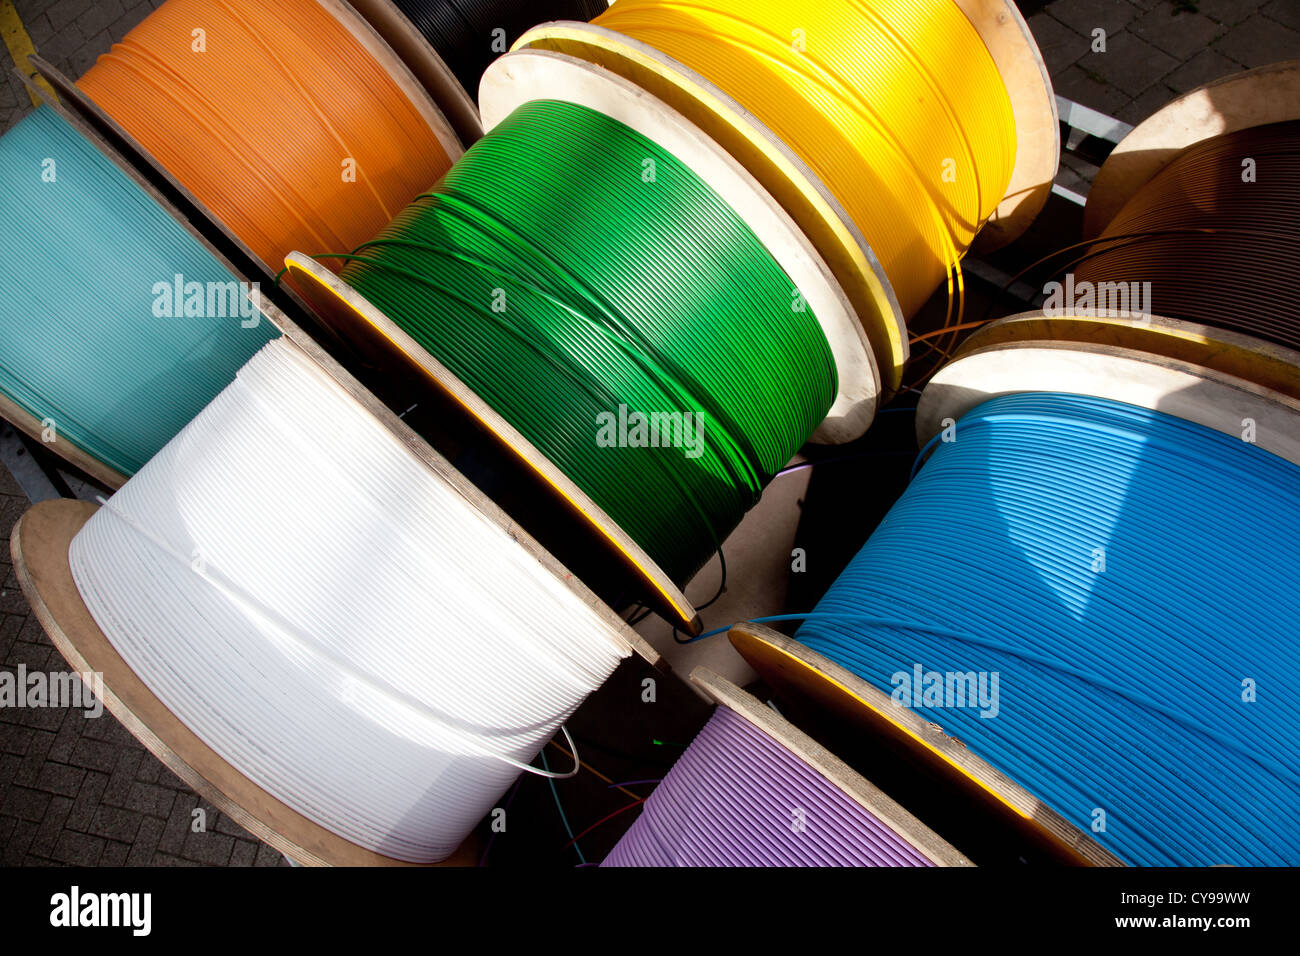 telephone cable spool stockfotos telephone cable spool bilder alamy. Black Bedroom Furniture Sets. Home Design Ideas